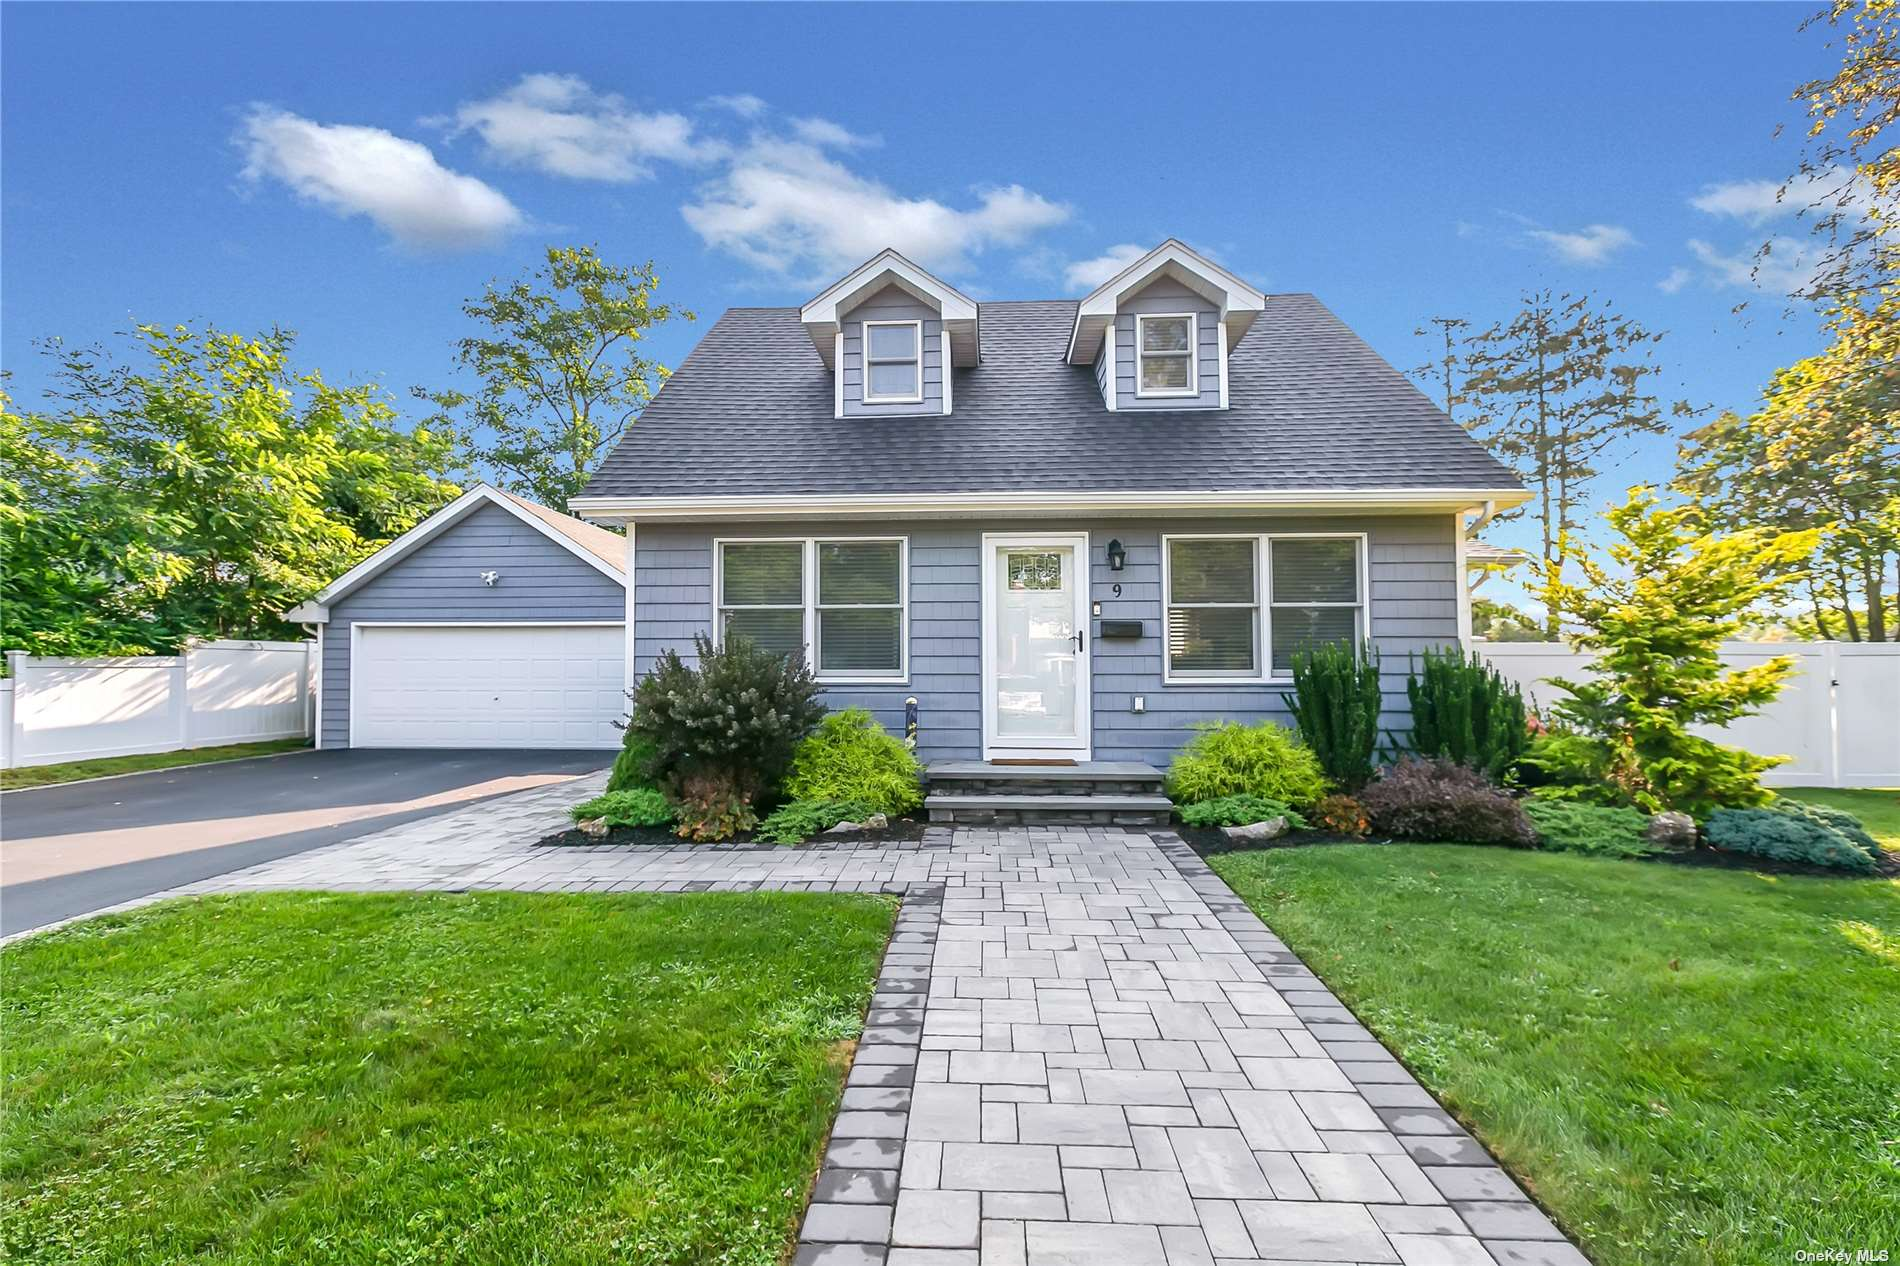 Stunning home on a super large property with beautiful landscaping in the heart of East Islip! Completely renovated just a few years ago and has all the bells and whistles!  Open floor plan with hardwood floors, custom mouldings, quartz kitchen counters, pantry, high-hat lighting, upgraded 200 amp electric, alarm system, 12-zone IGS and more!  Double-wide paved driveway leads to 2 car garage with attached multi-purpose shed is perfect for an outdoor relaxation or entertainment area.  Don't hesitate - this won't be on the market for long!